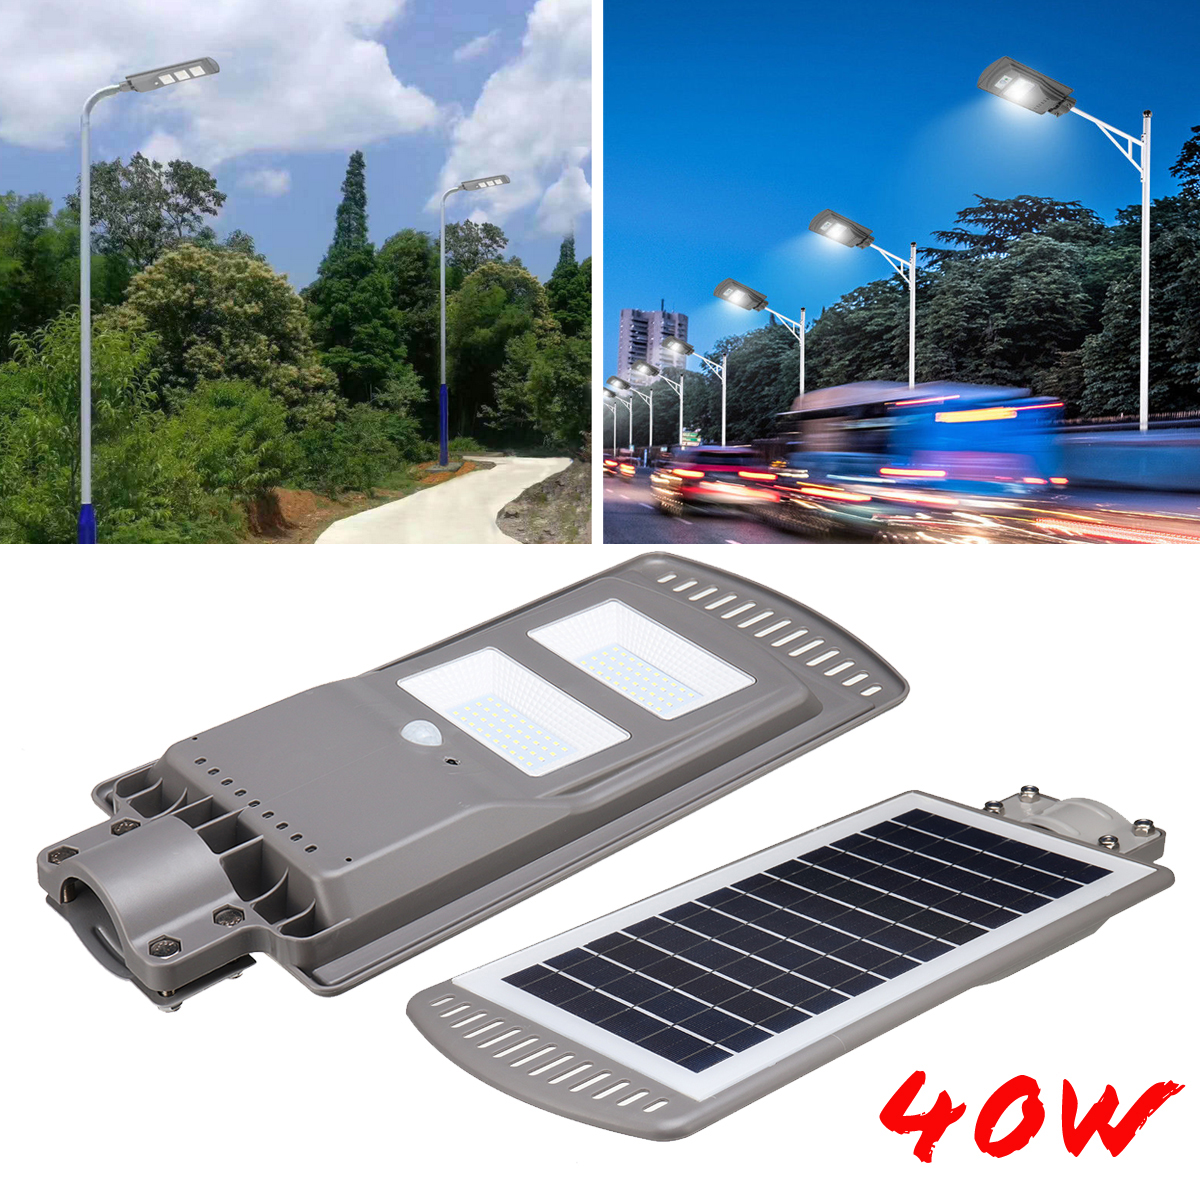 Solar Powered Panel 40W LED Solar Street Light All-in-1 Time Switch Waterproof IP67 Wall Path Lighting Lamp for Outdoor Garden high lumen 60w all in one solar street light south africa for commerical lighting residential lighting